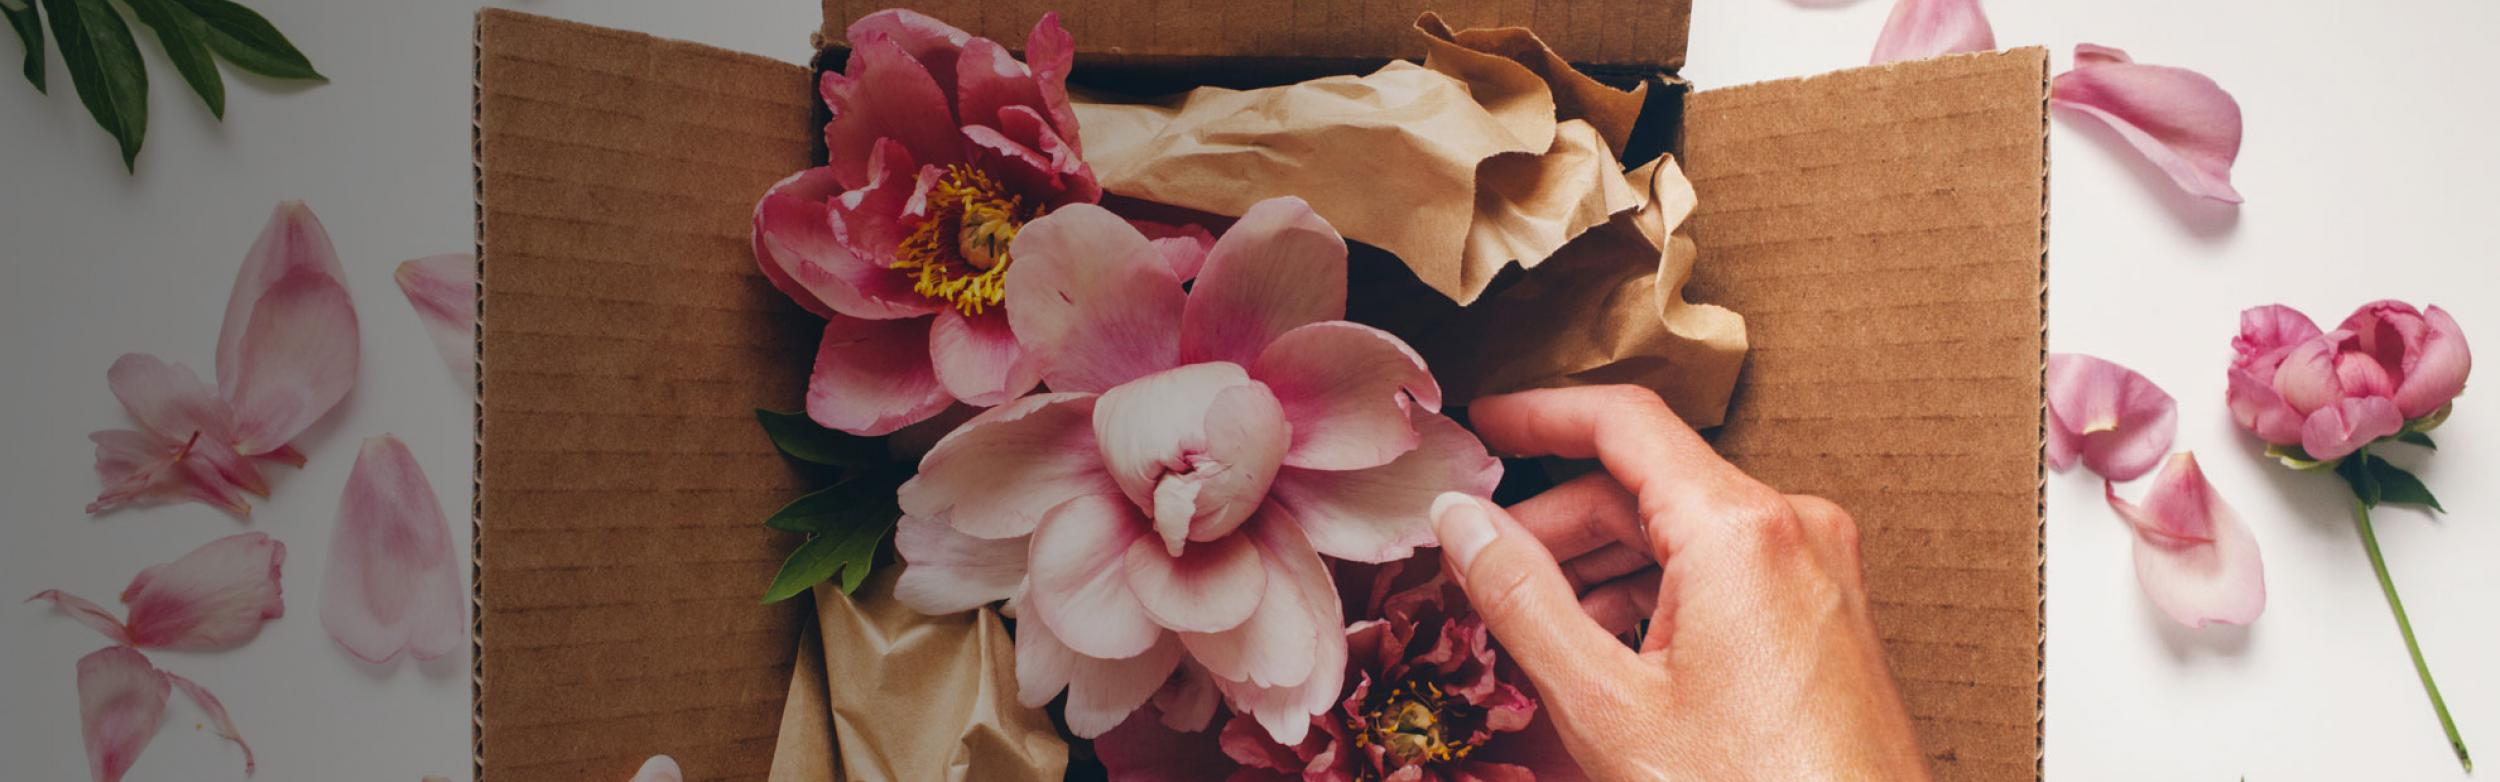 A hand carefully unwrapping packed pink peonies from a box with scattered peonies and leaves in the background.